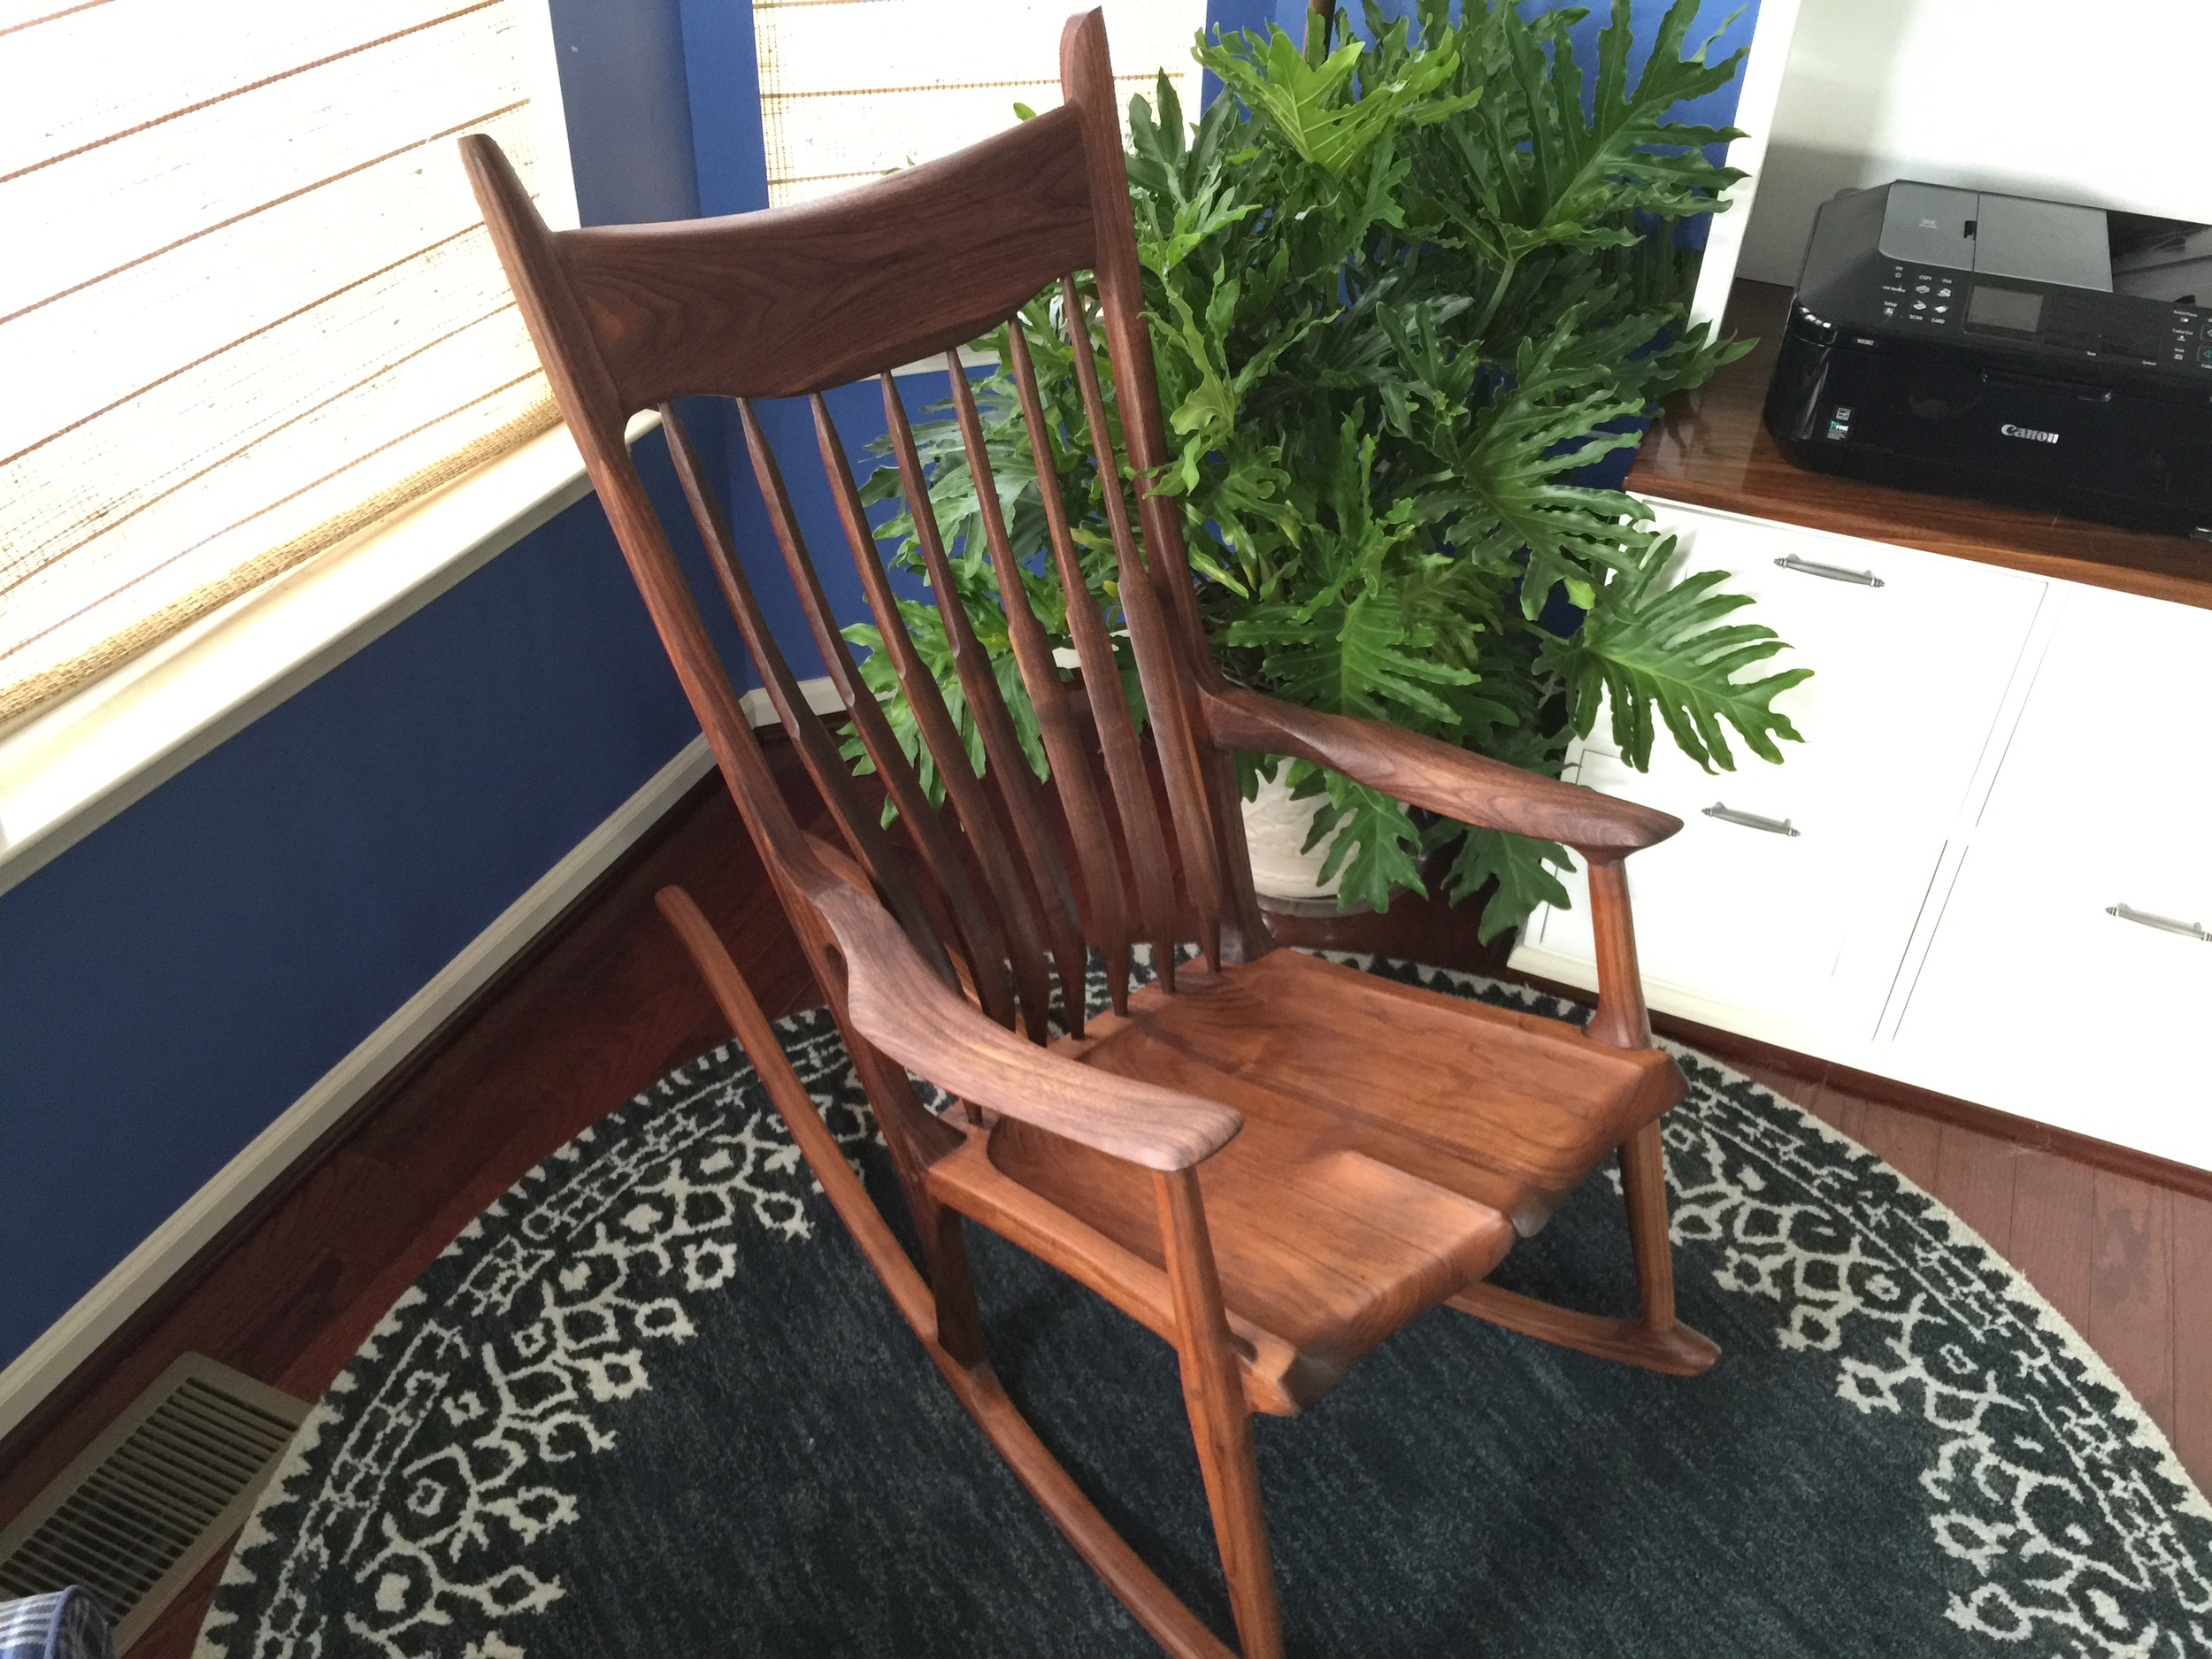 Maloof Inspired Sculpted Rocker